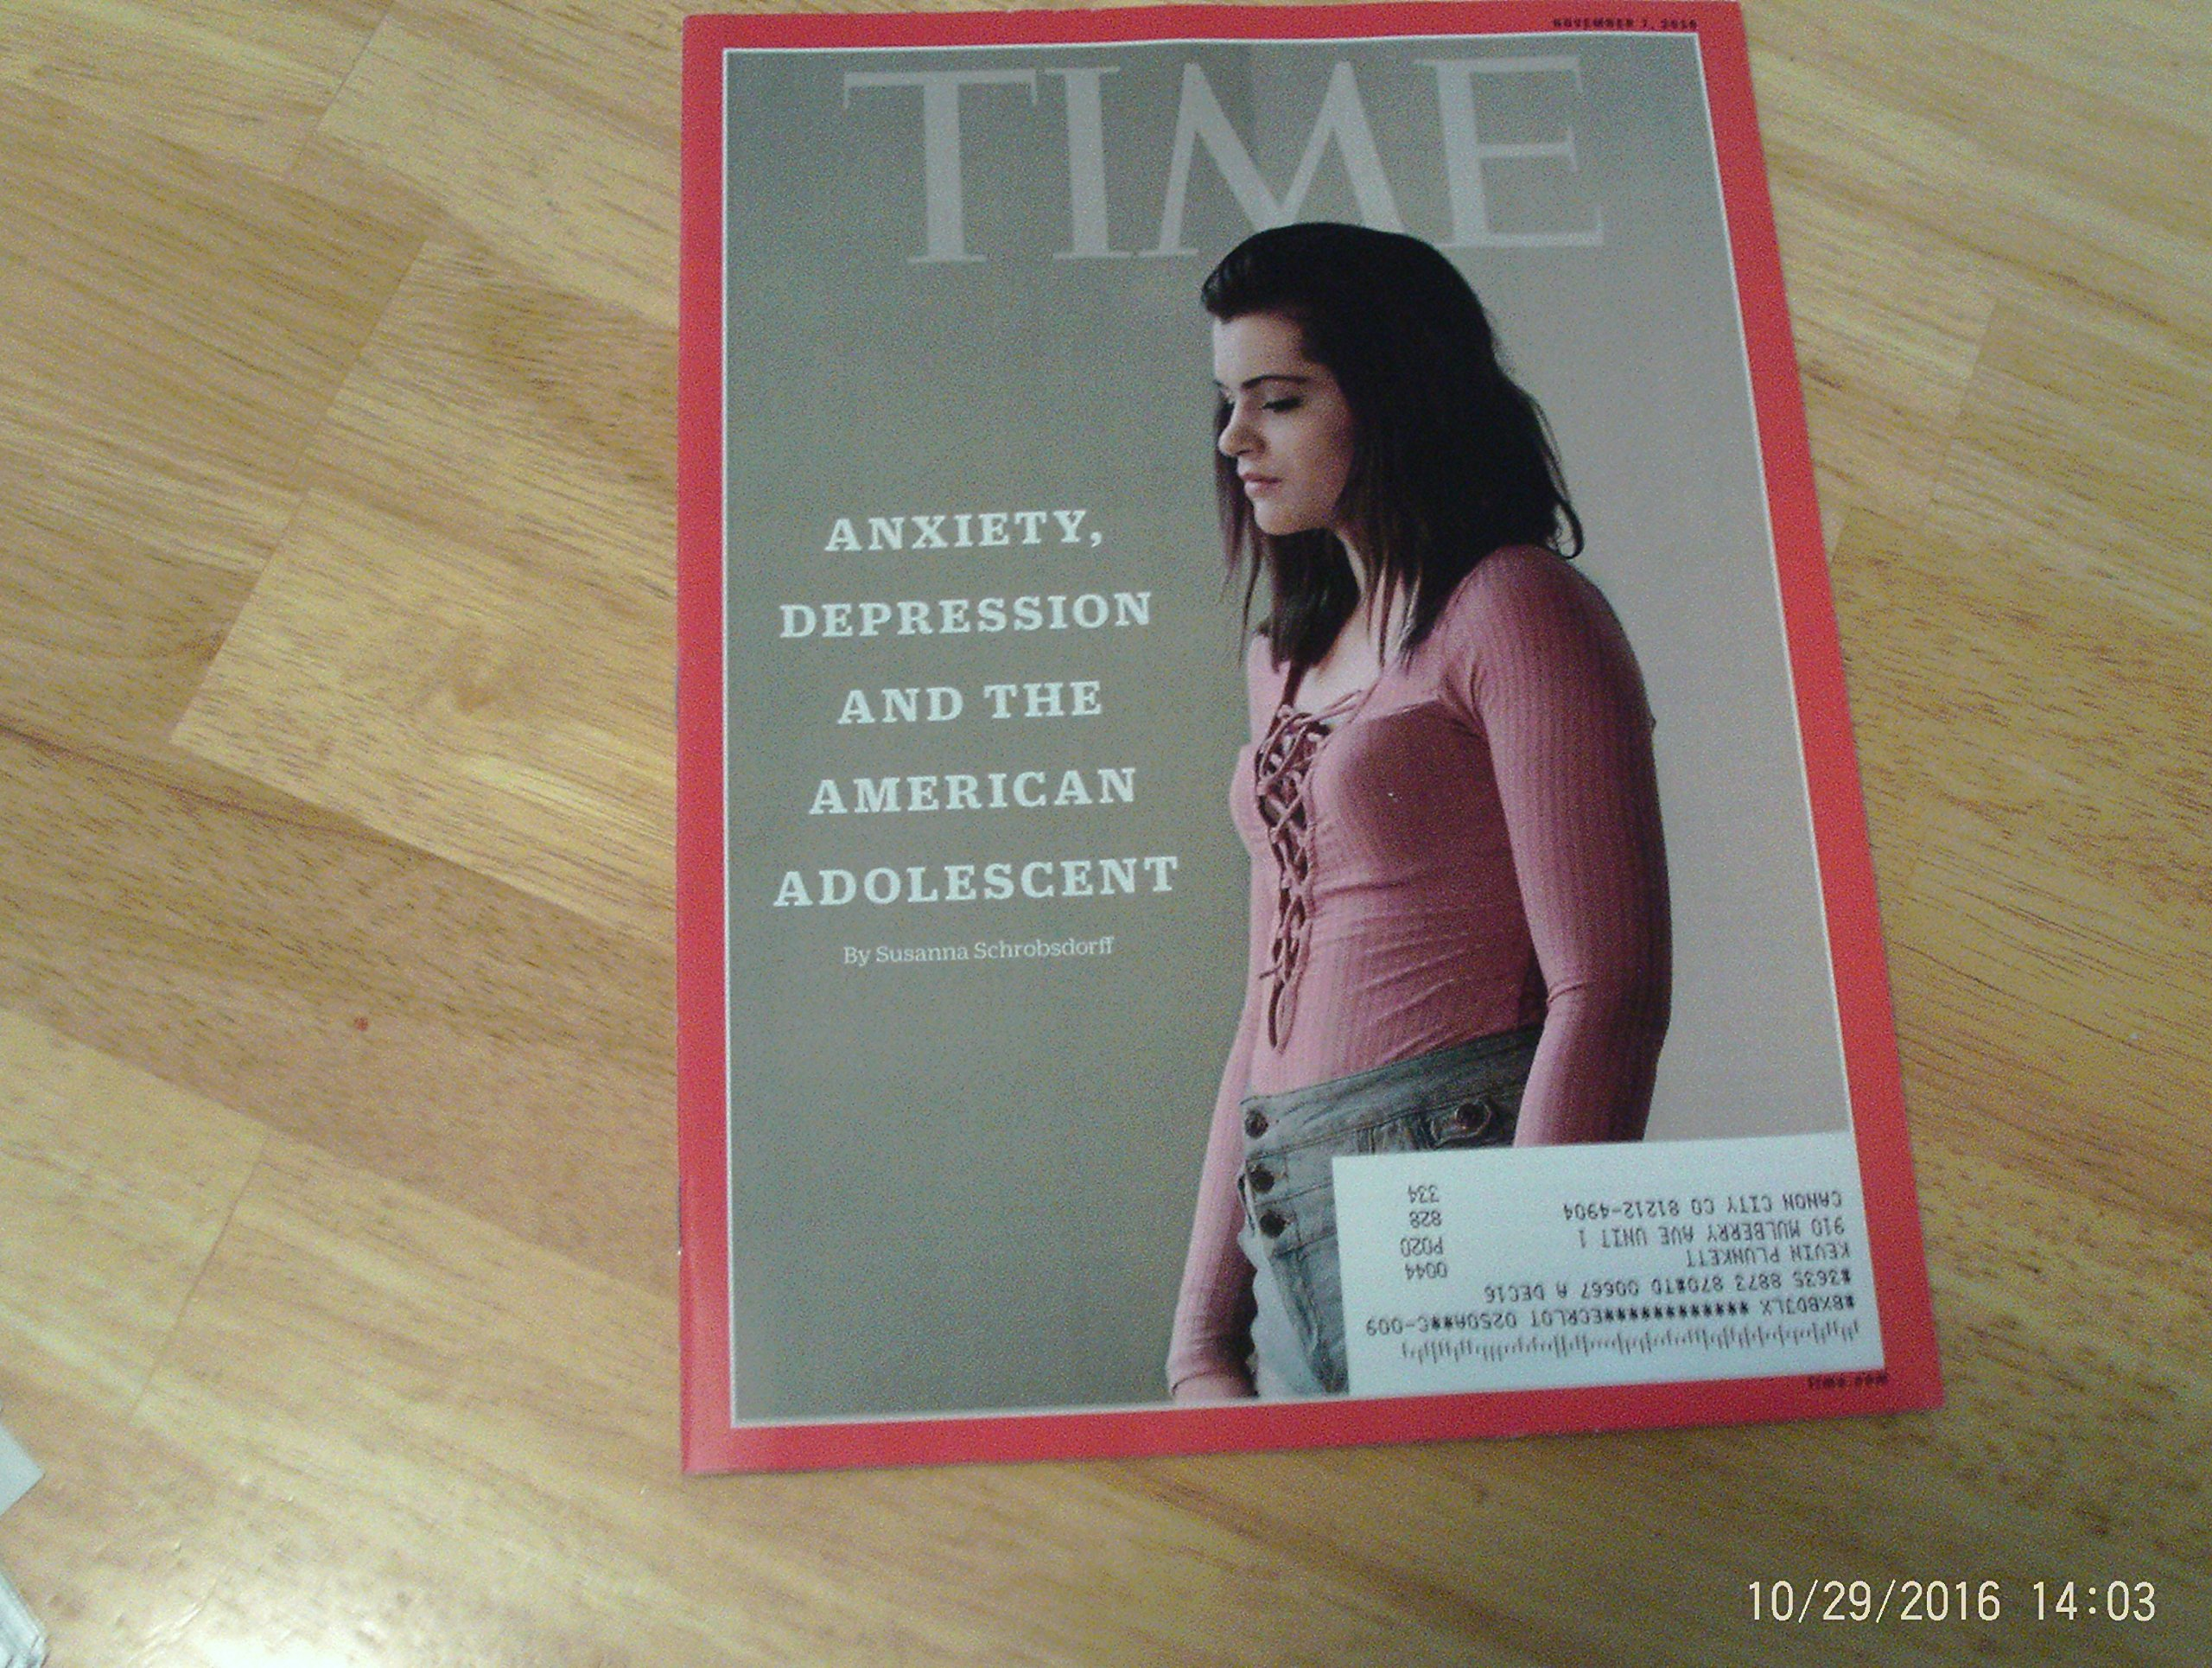 Time November 7 2016 Anxiety, Depression & the American Adolescent pdf epub